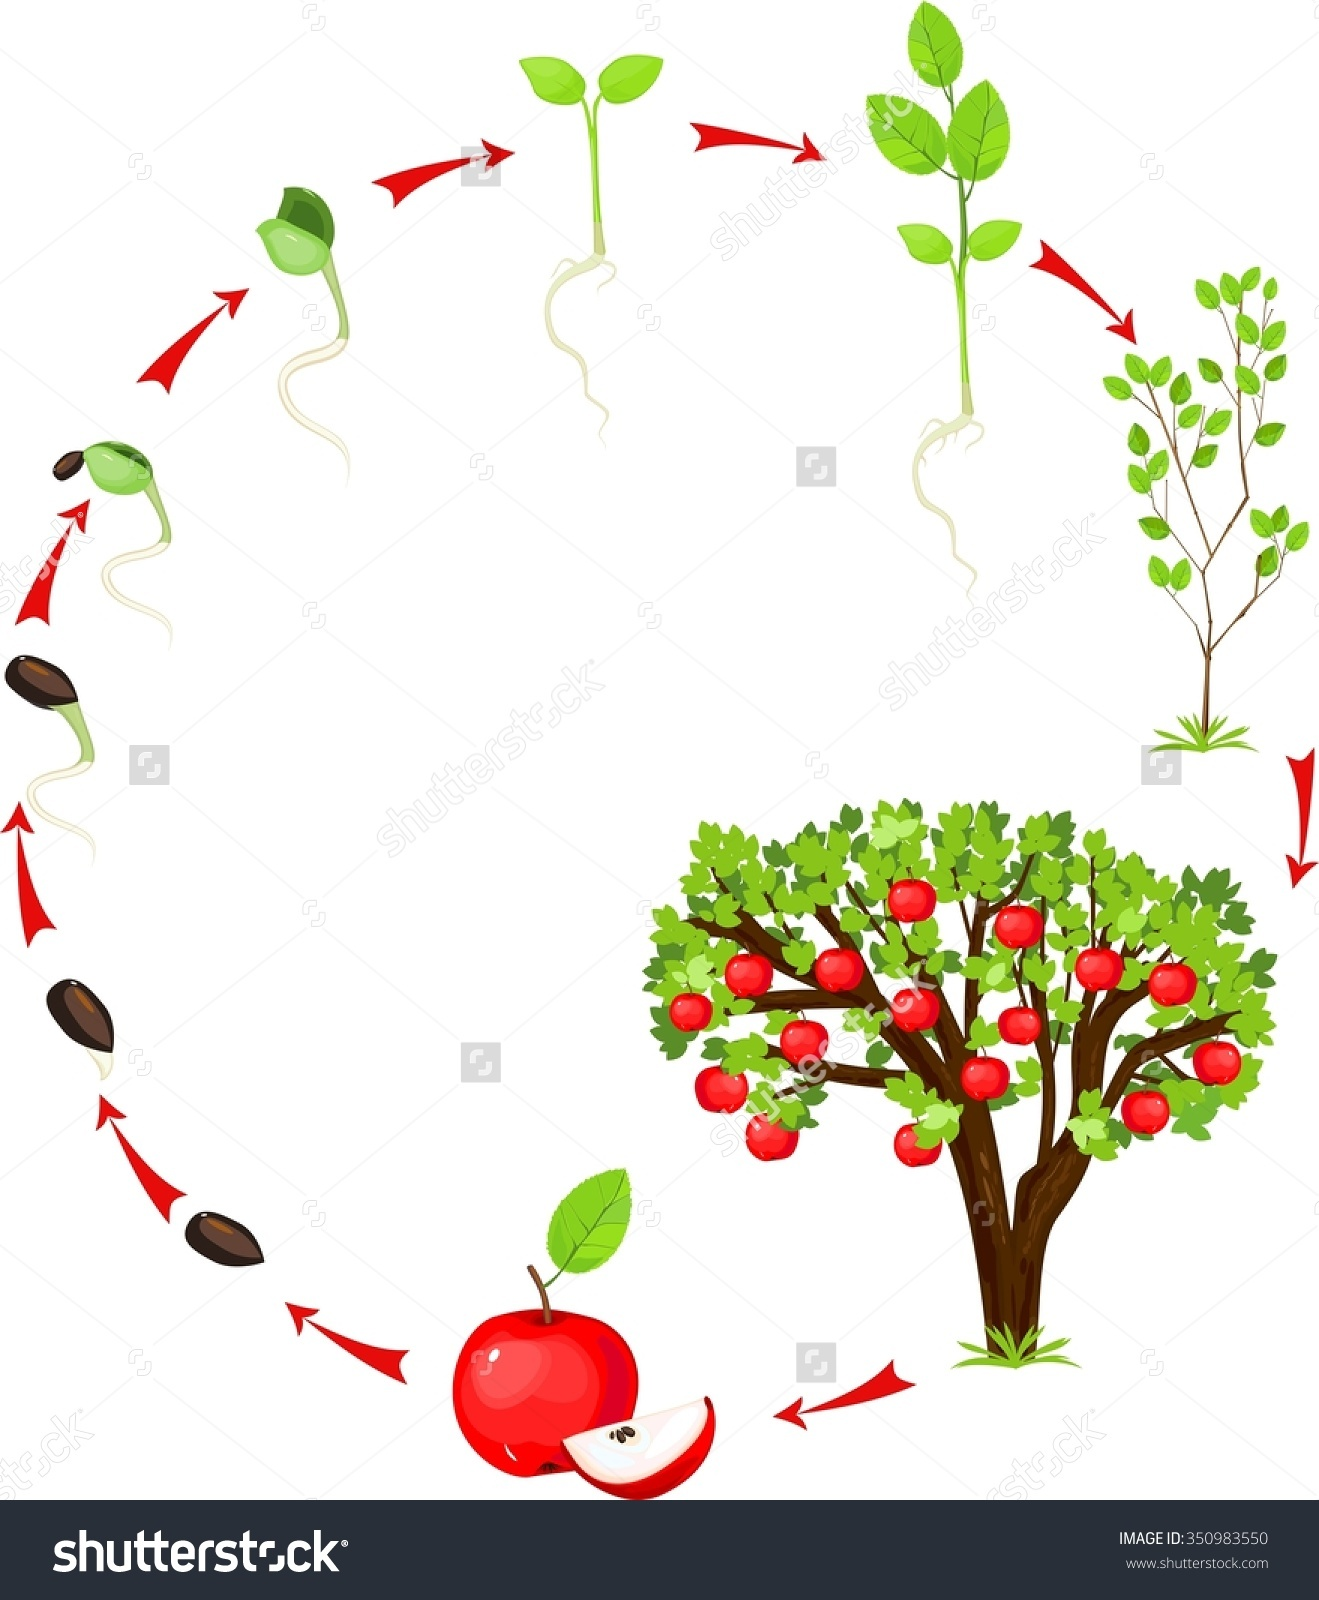 Clipartfest save to a. Apple tree cycle clipart